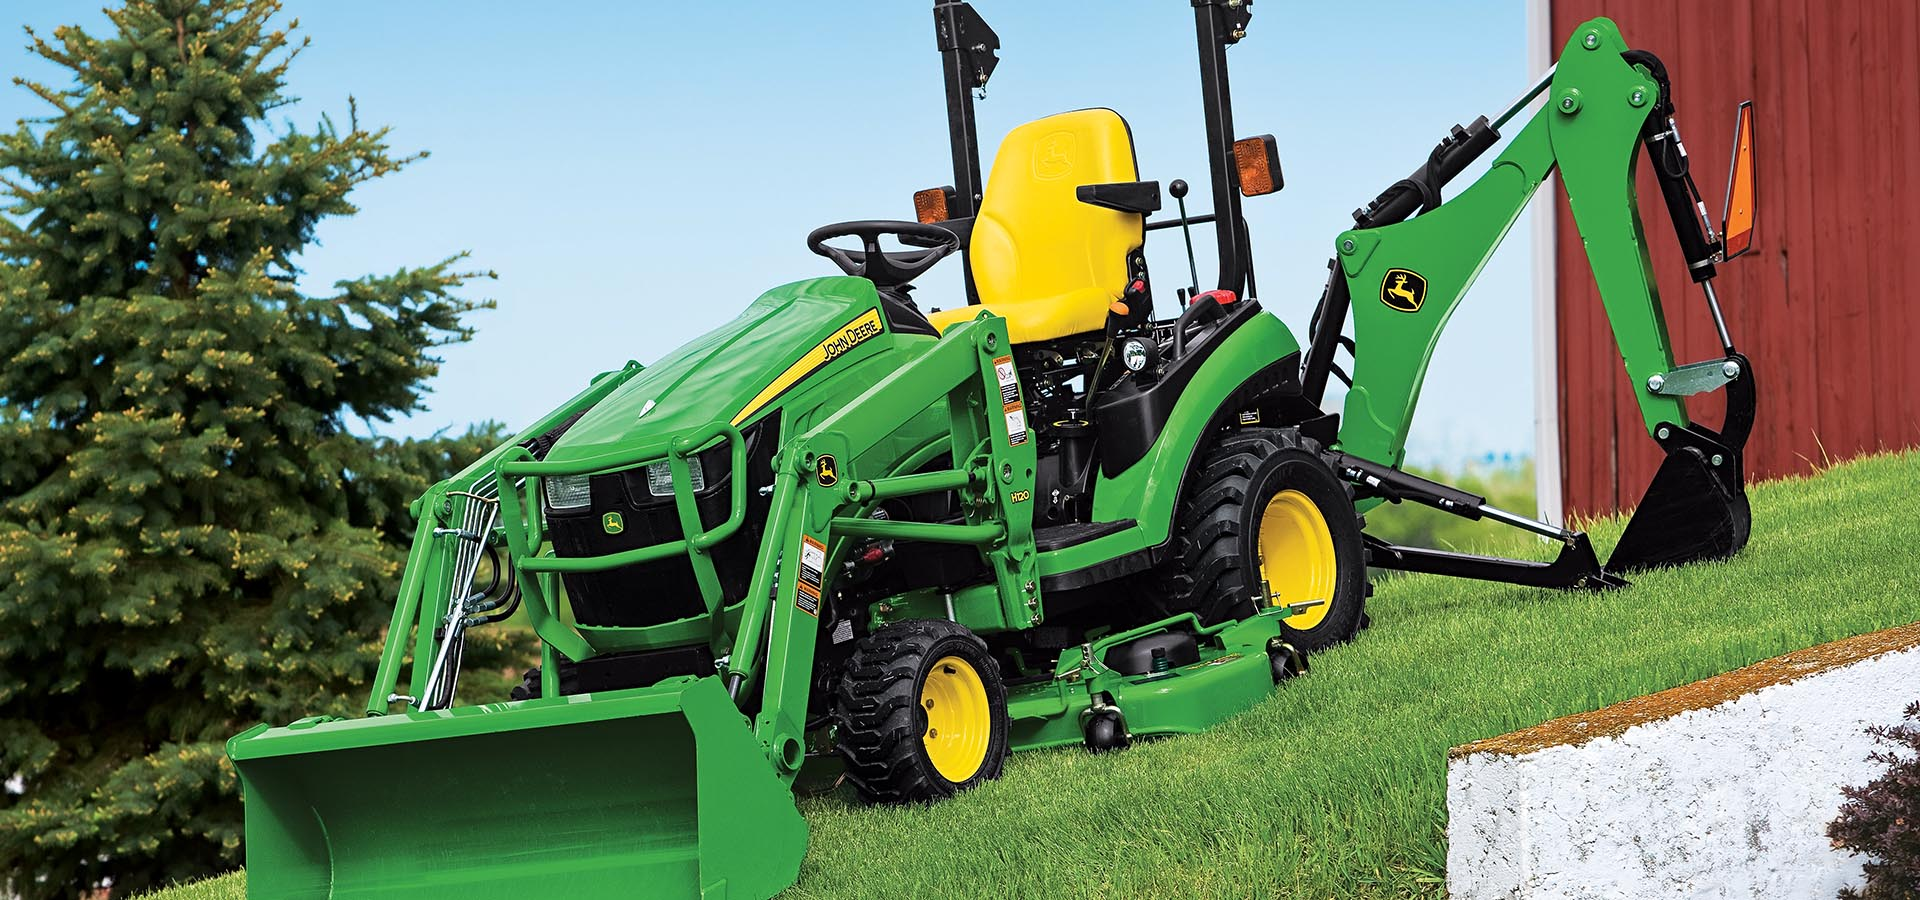 John Deere Tractors for Sale | Landscape Supply, Co.